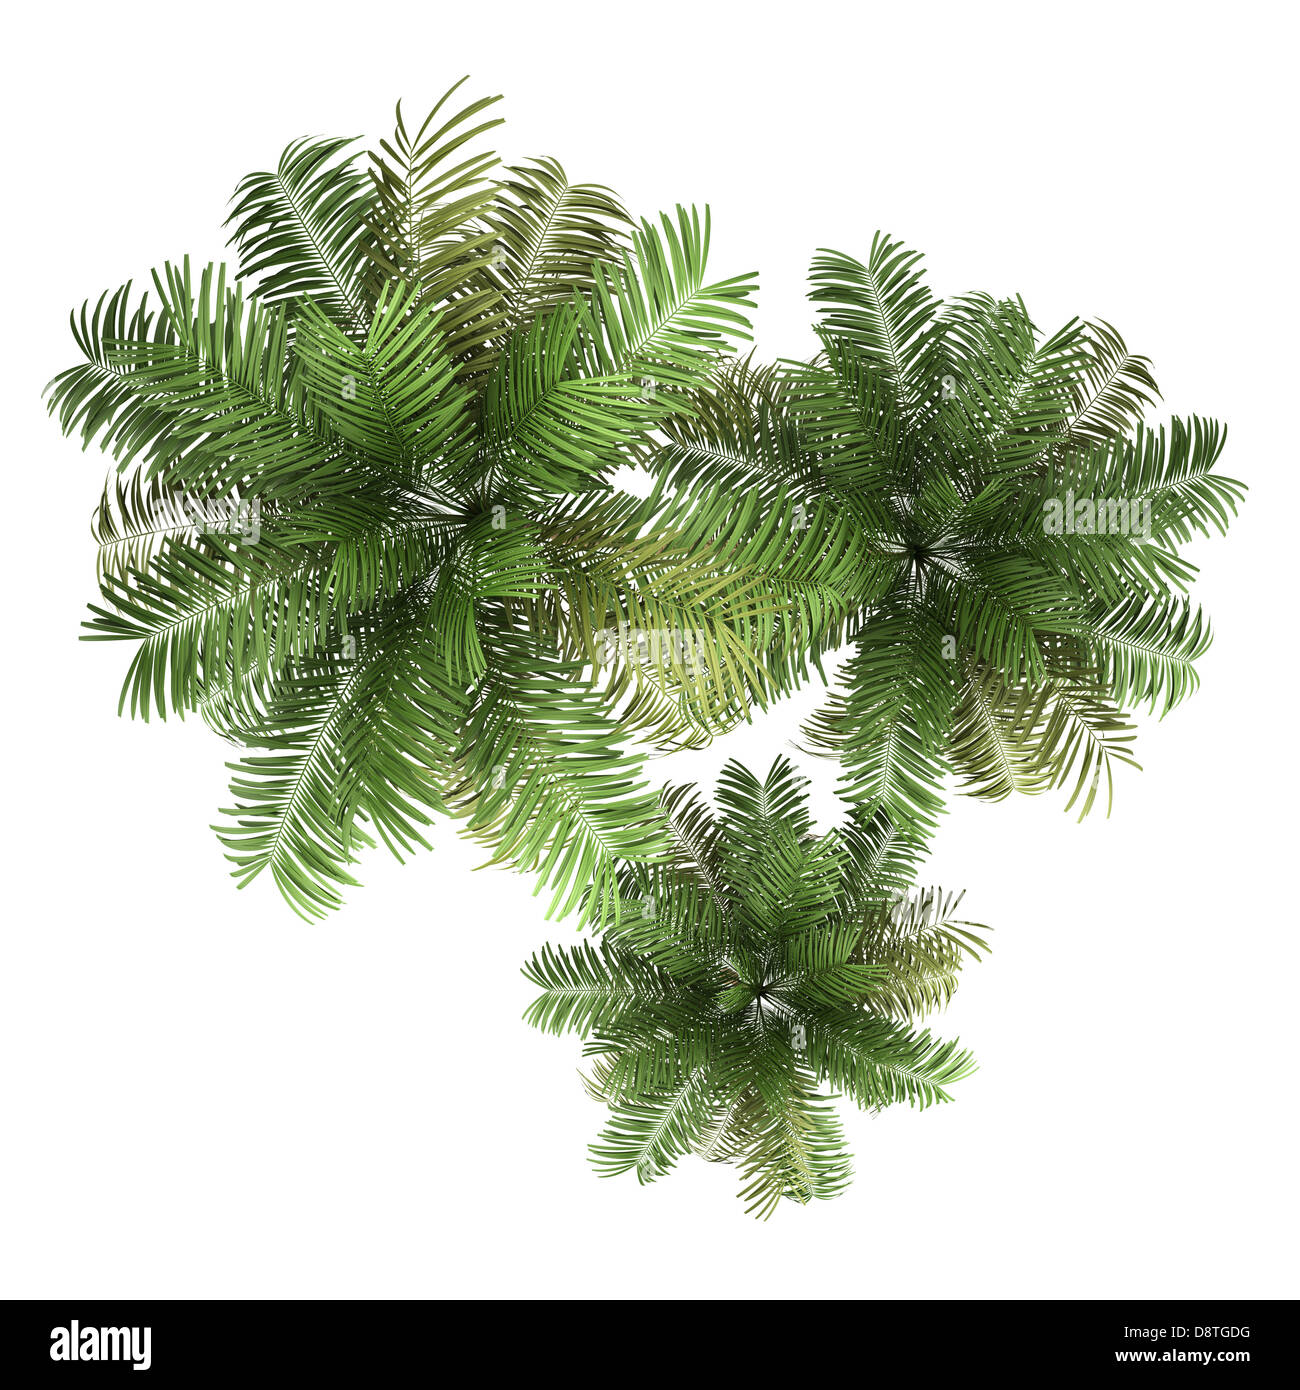 top view of three areca palm trees isolated - Stock Image